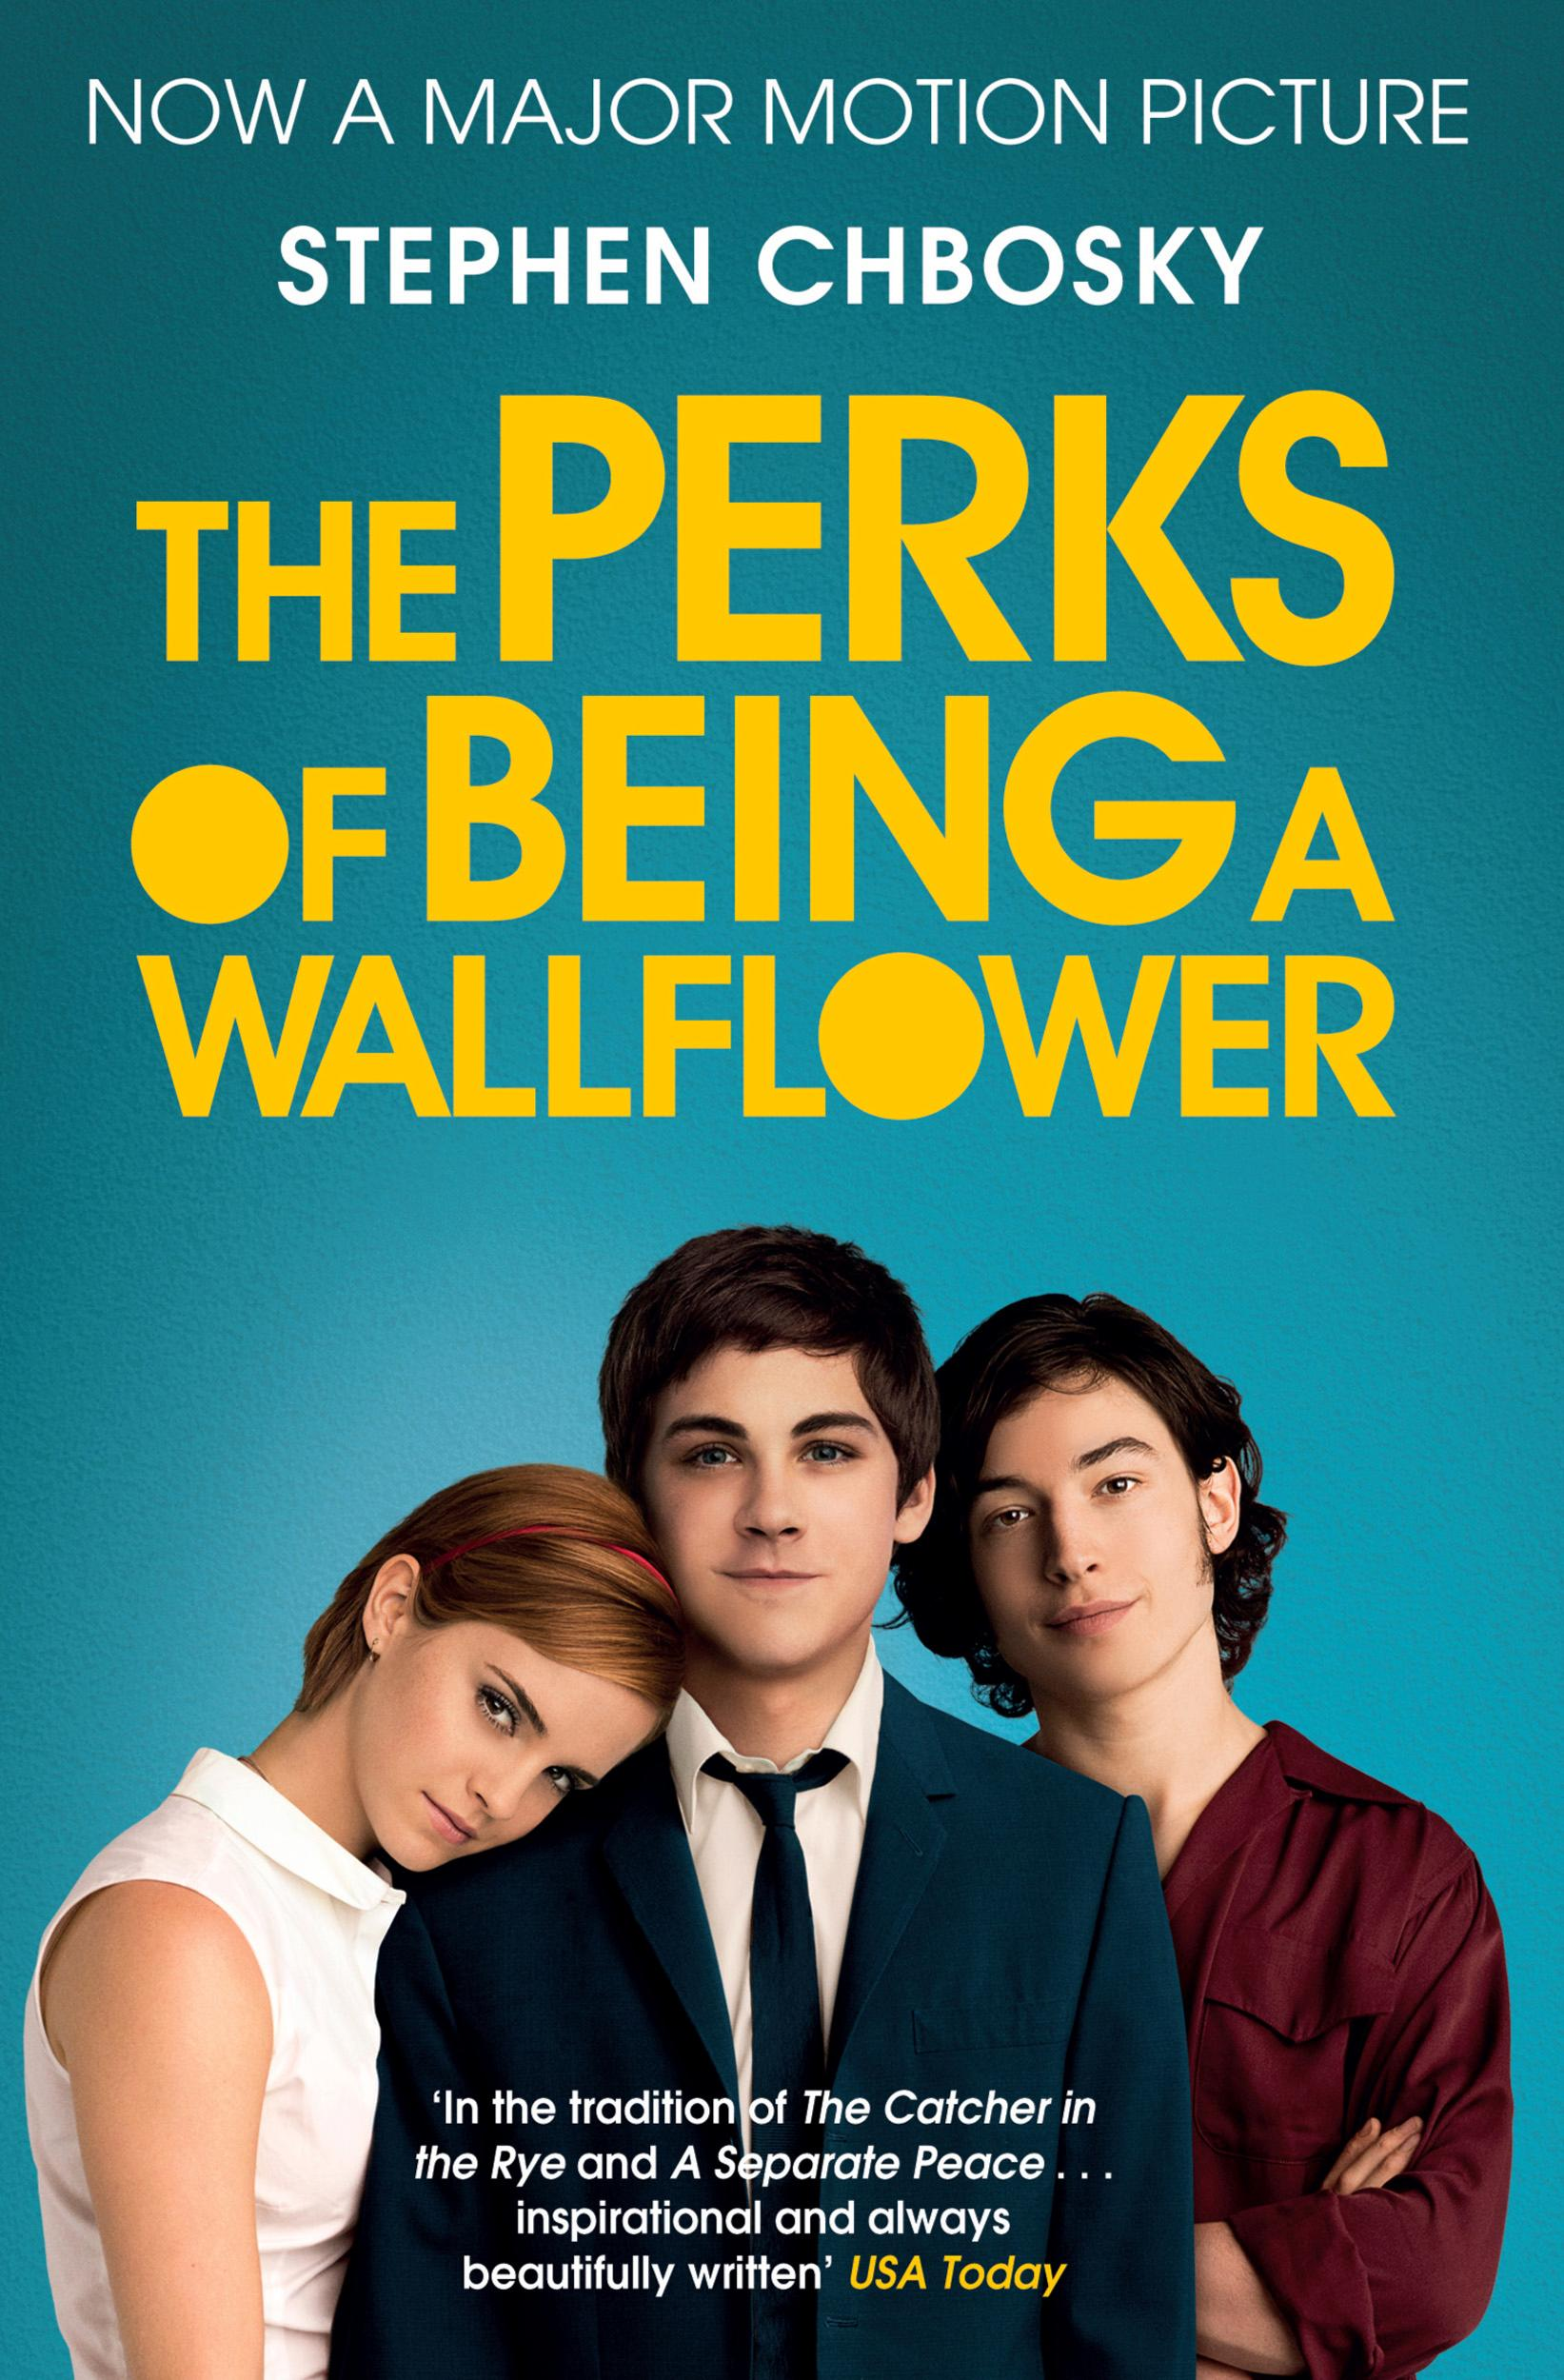 the concept of heroes in the book the perks of being a wallflower by stephen chbosky The perks of being a wallflower is the story of love, hormones and the concept of of very well-written book i applaud stephen chbosky for his ability to.